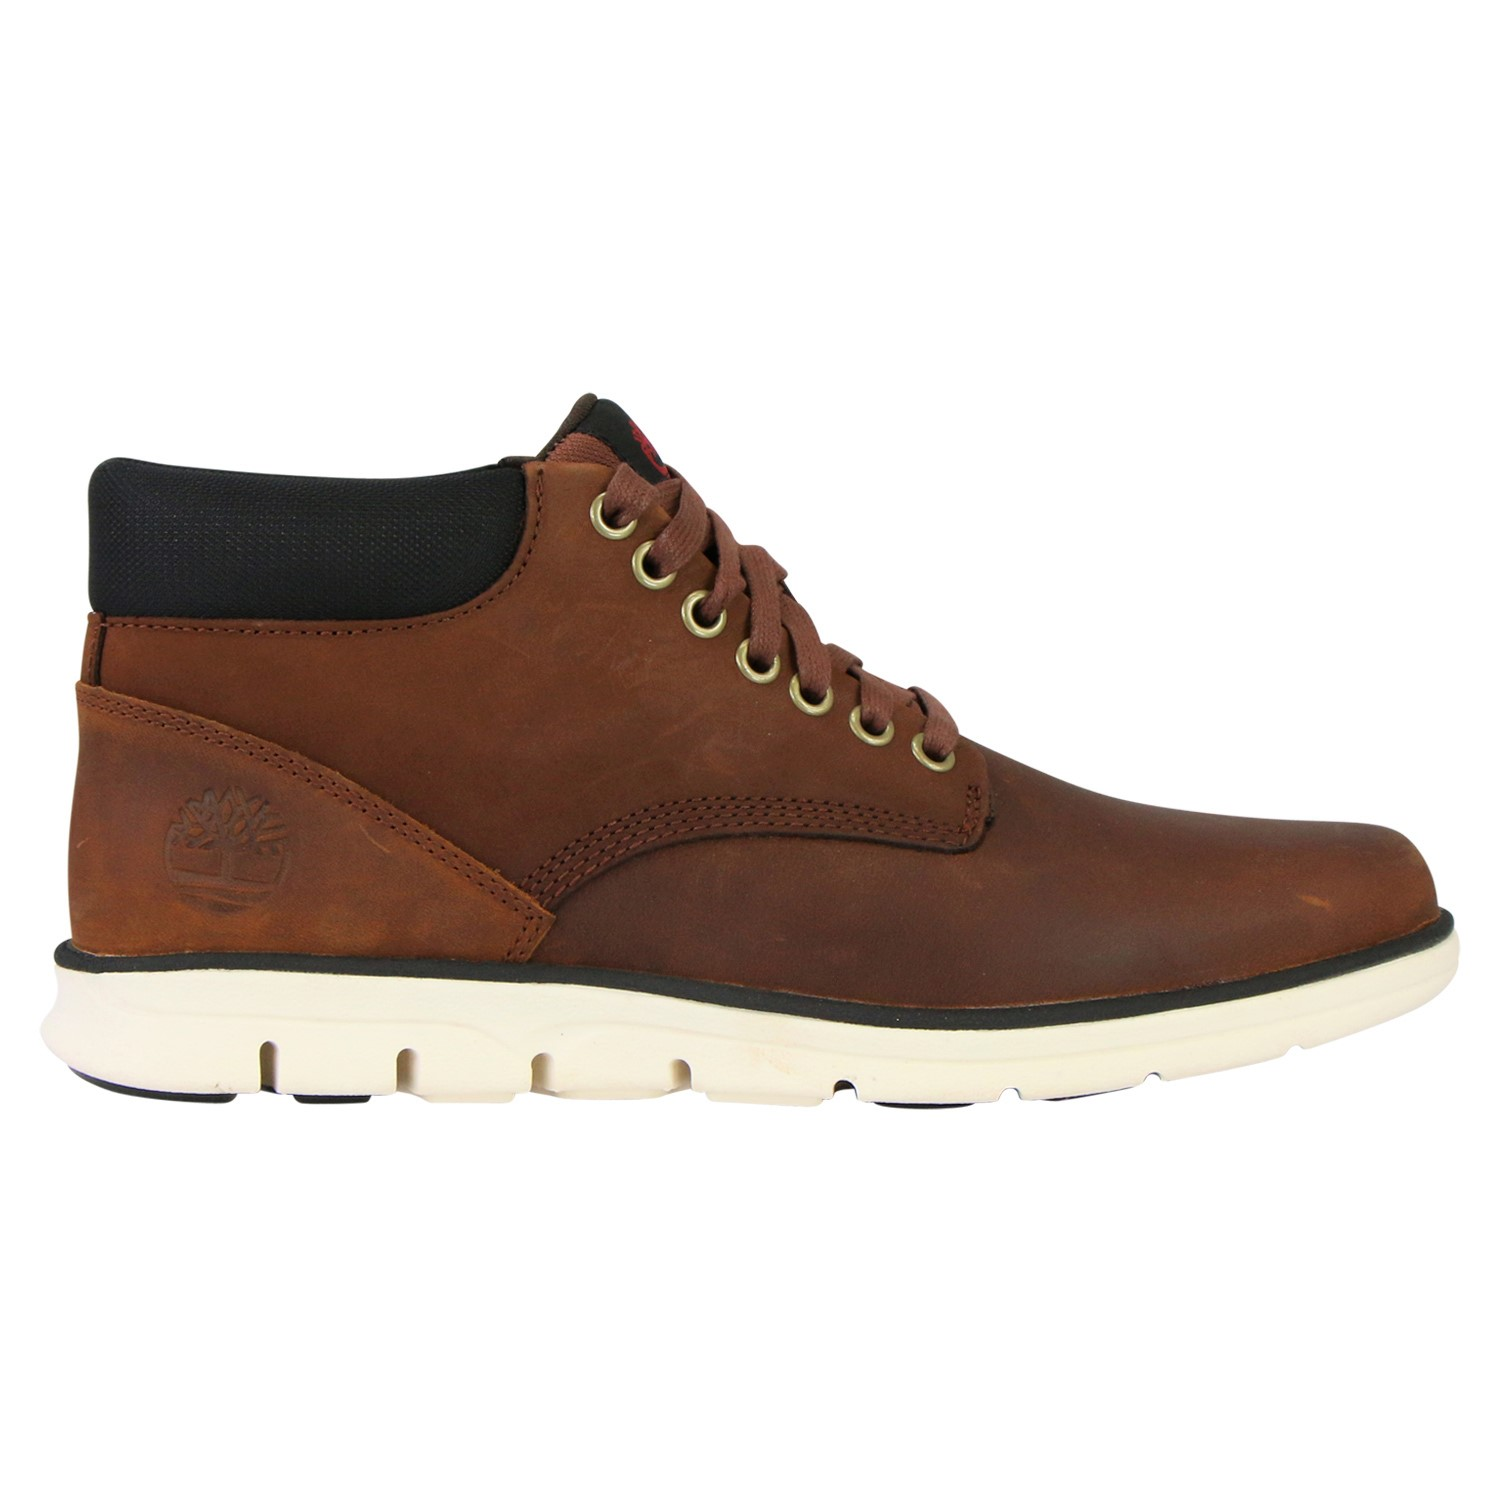 timberland bradstreet chukka schuhe boots halbschuhe sneaker herren winter ebay. Black Bedroom Furniture Sets. Home Design Ideas